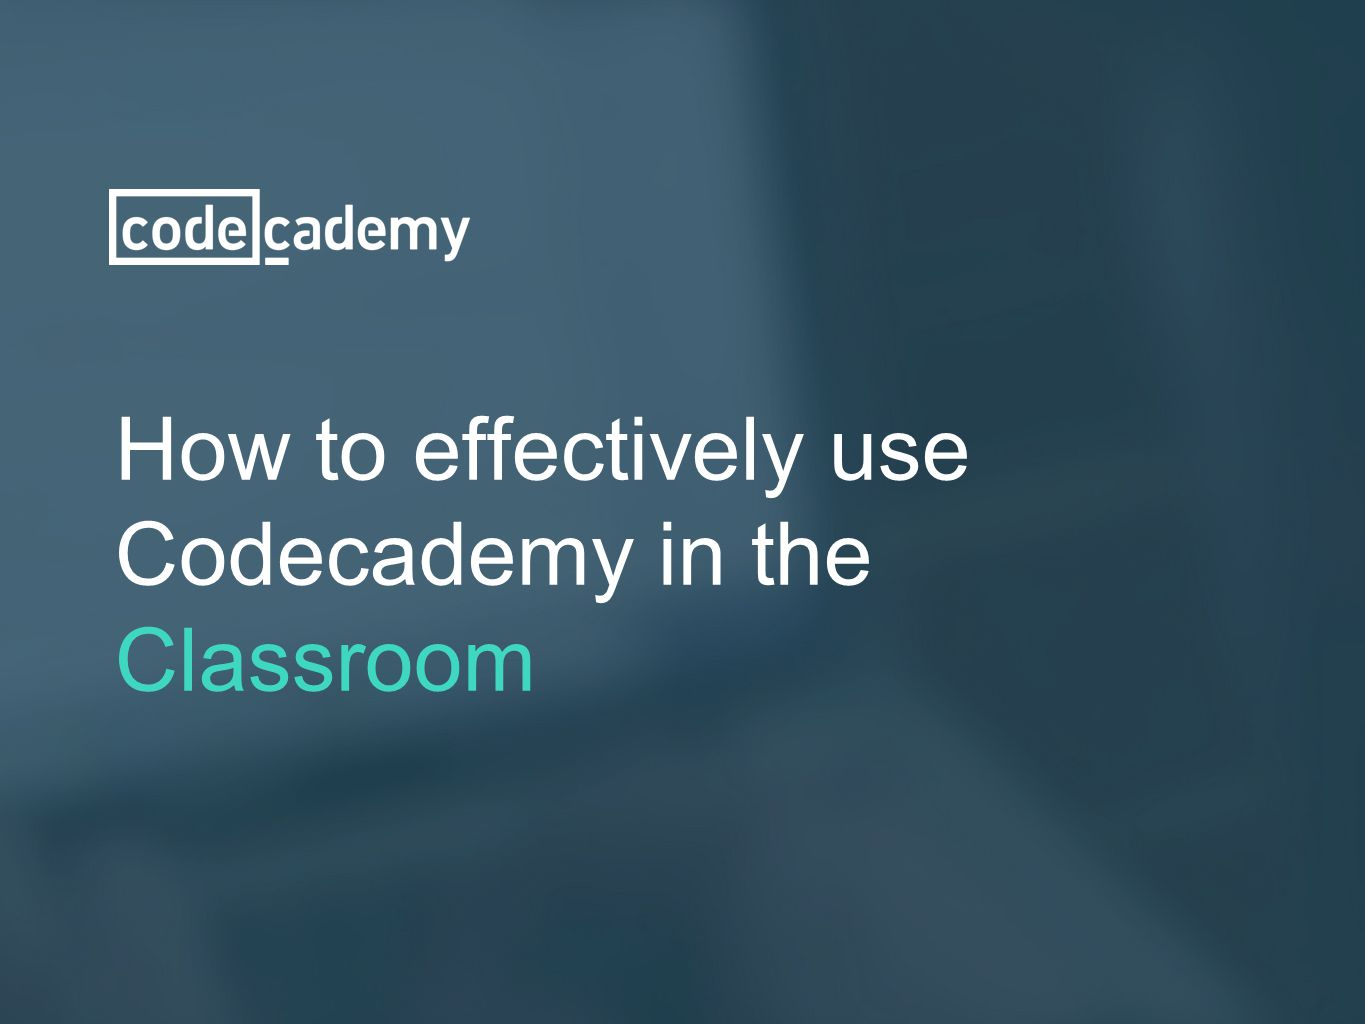 How to effectively use Codecademy in the Classroom